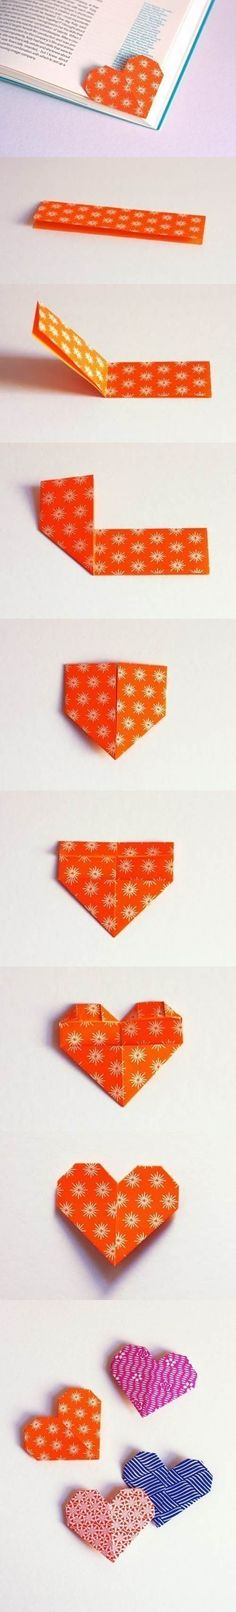 DIY Cute Origami Heart Shaped Bookmark | iCreativeIdeas.com Like Us on Facebook ==> https://www.facebook.com/icreativeideas